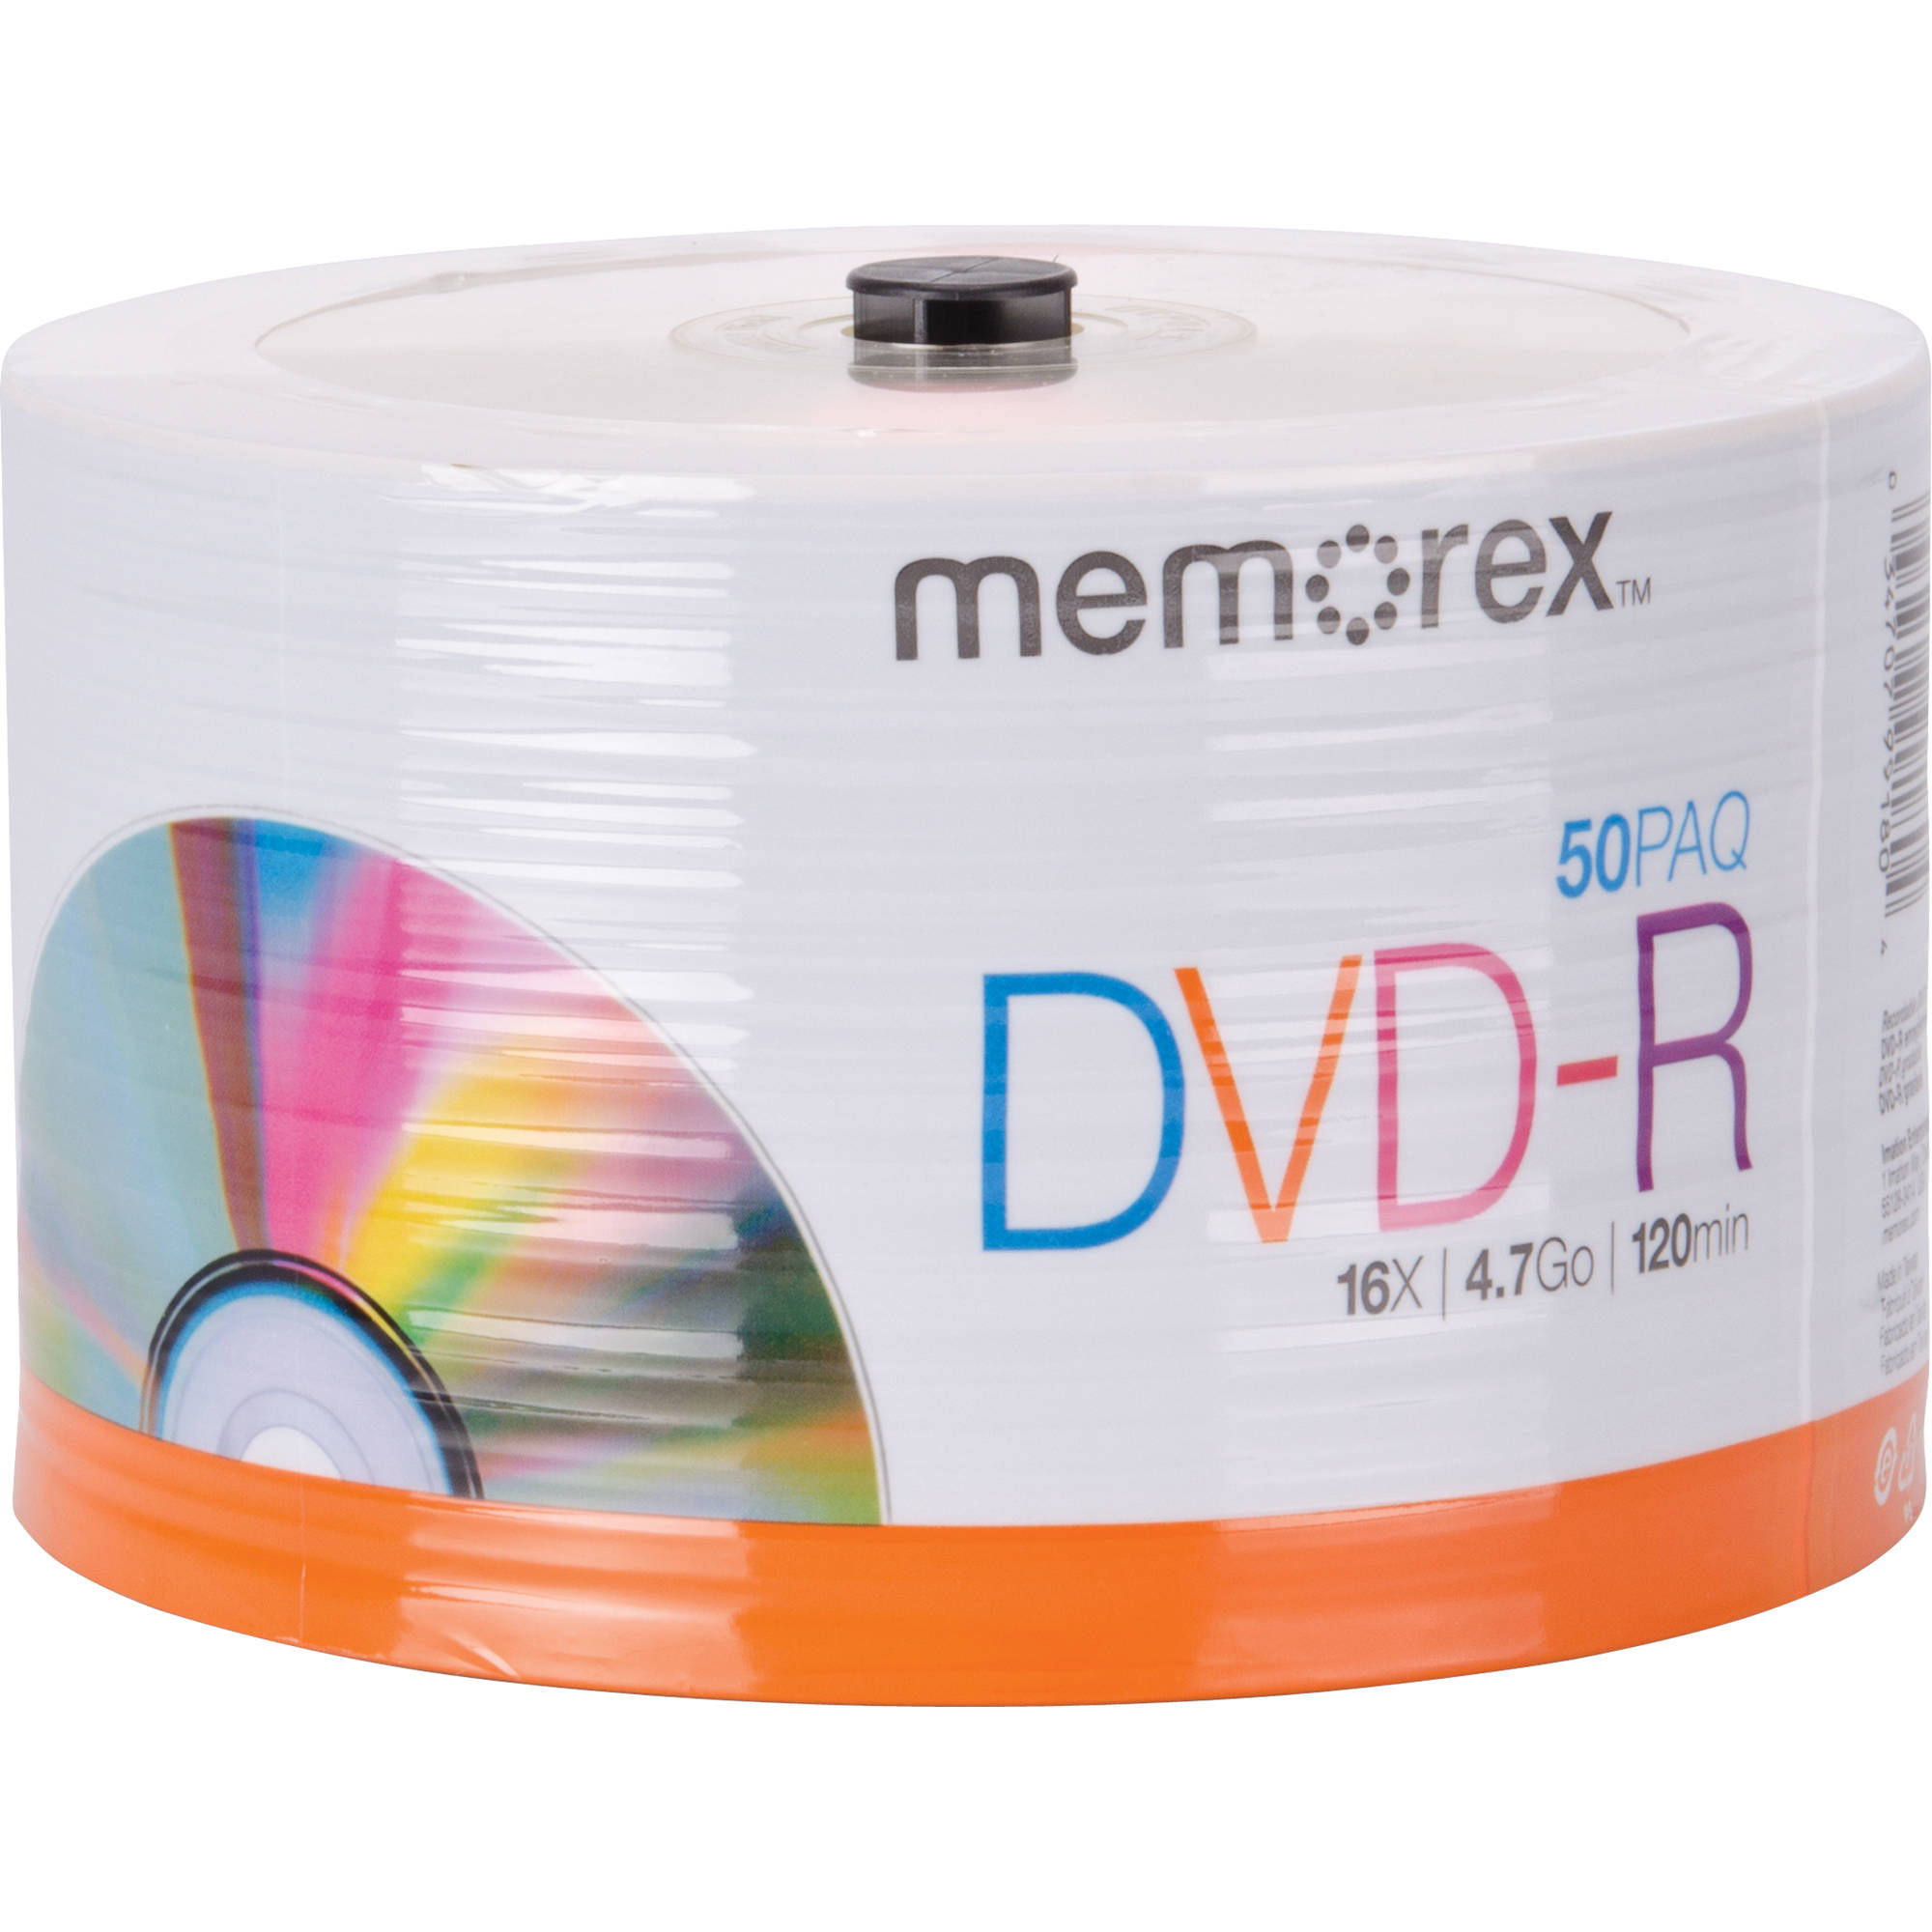 MEMOREX DVD 16X DRIVERS FOR MAC DOWNLOAD